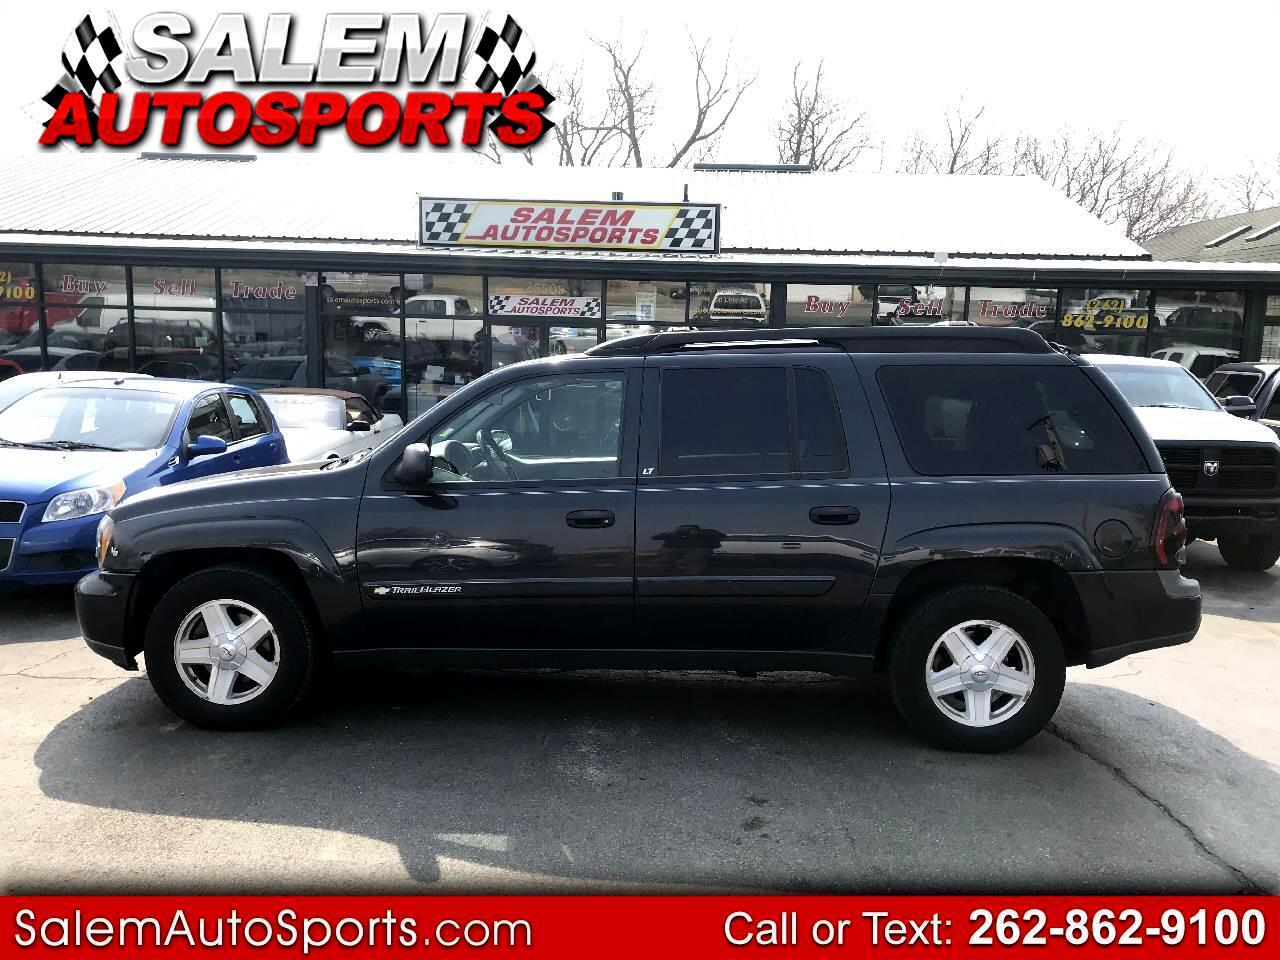 2003 Chevrolet TrailBlazer 4dr 4WD EXT LT